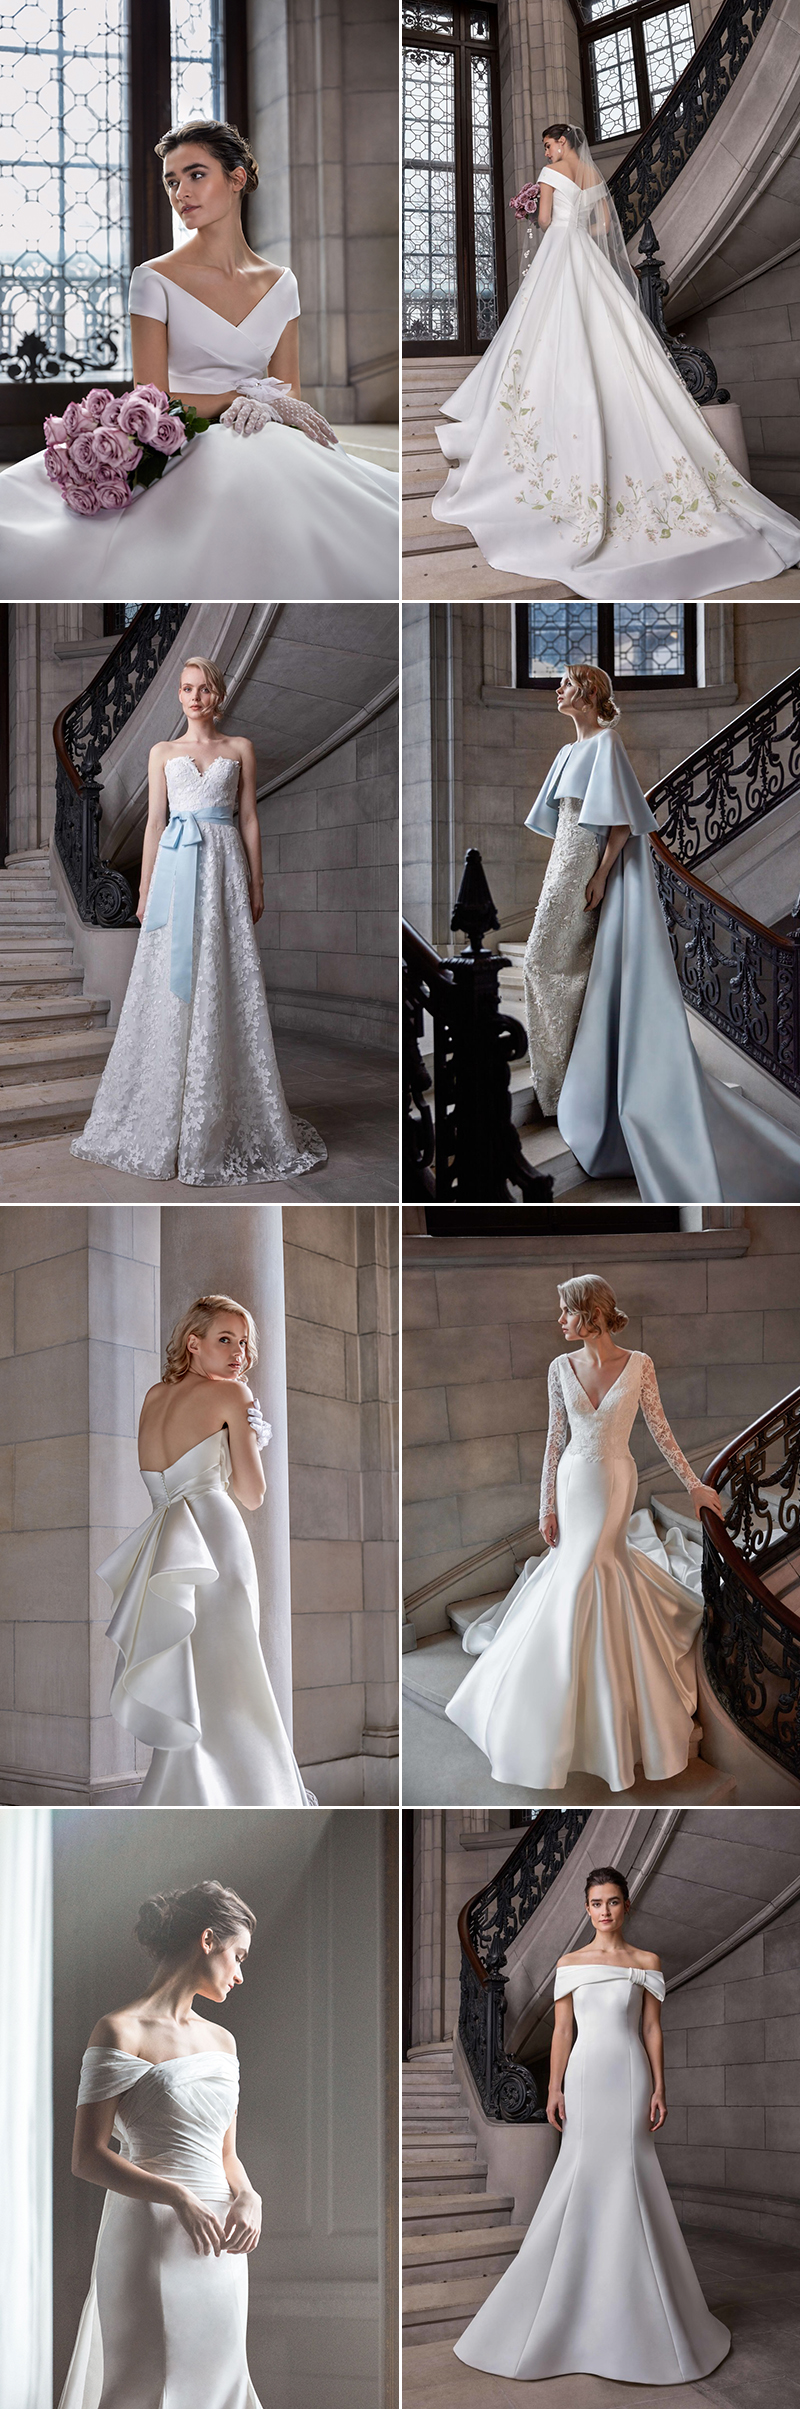 Wedding Dress Spring 2020 New York Fashion Show